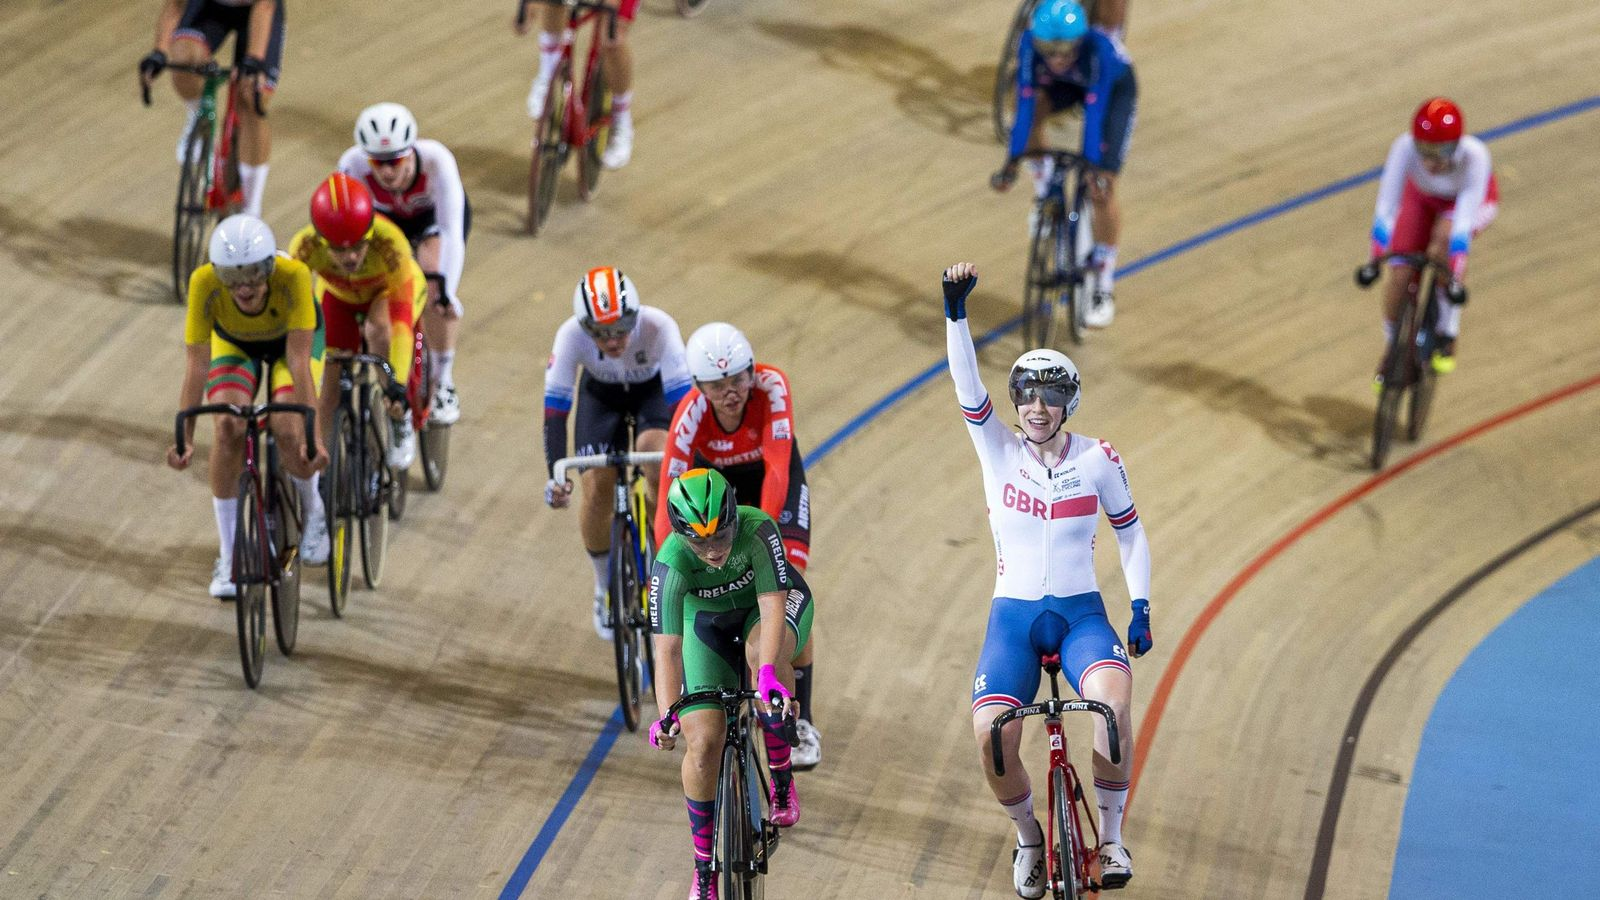 Britain's Emily Nelson wins first gold at the European Track Cycling Championships